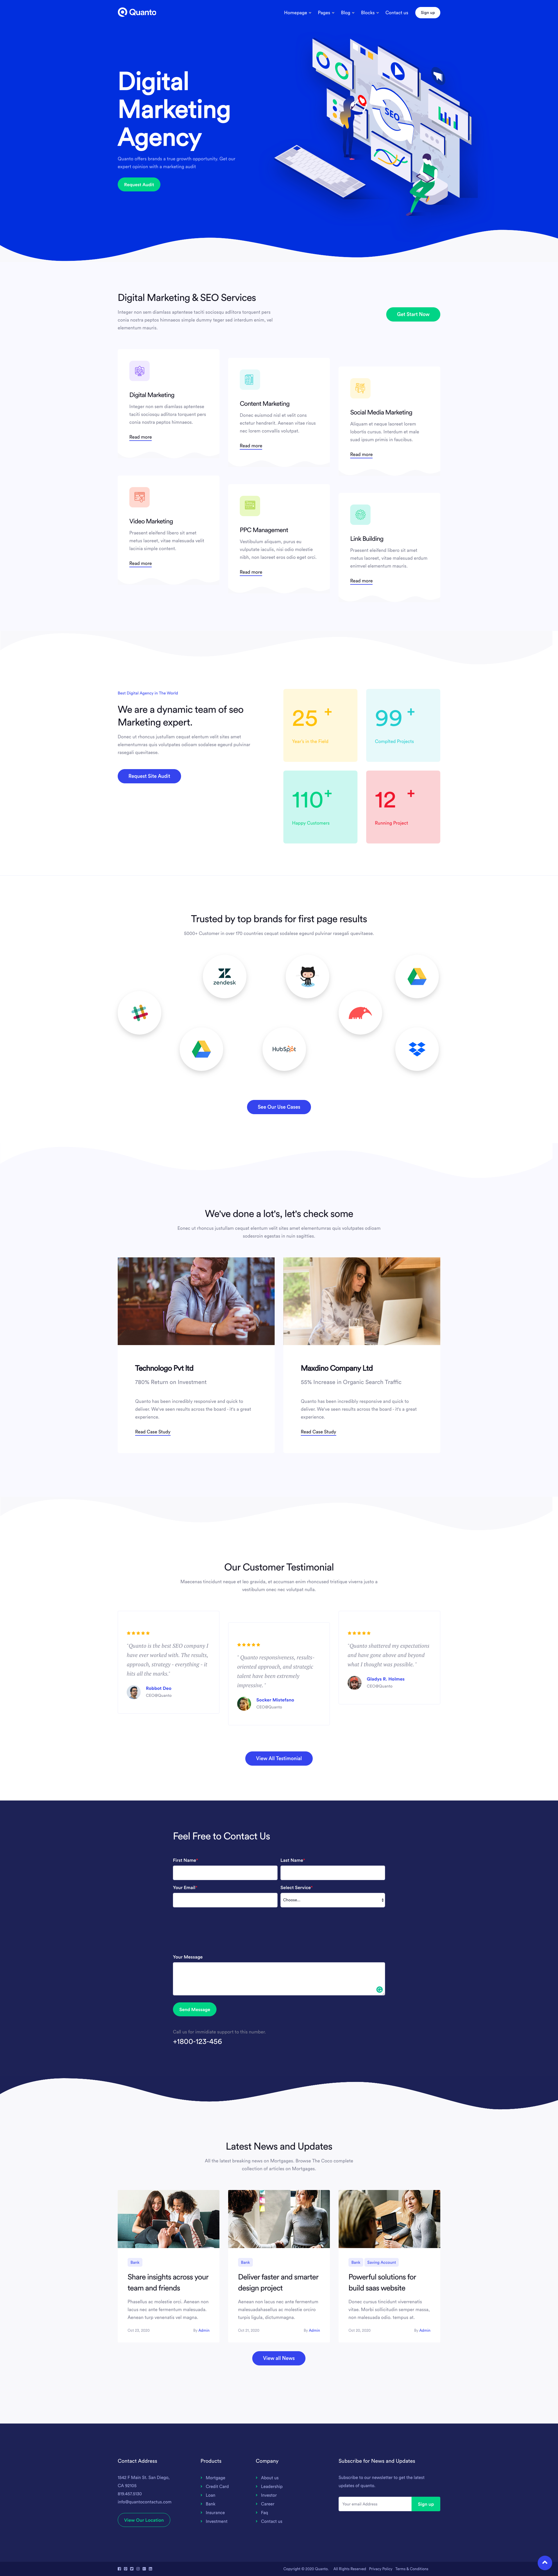 Digital Marketing Website Design Template 2020 In 2020 Marketing Website Website Template Design Digital Marketing